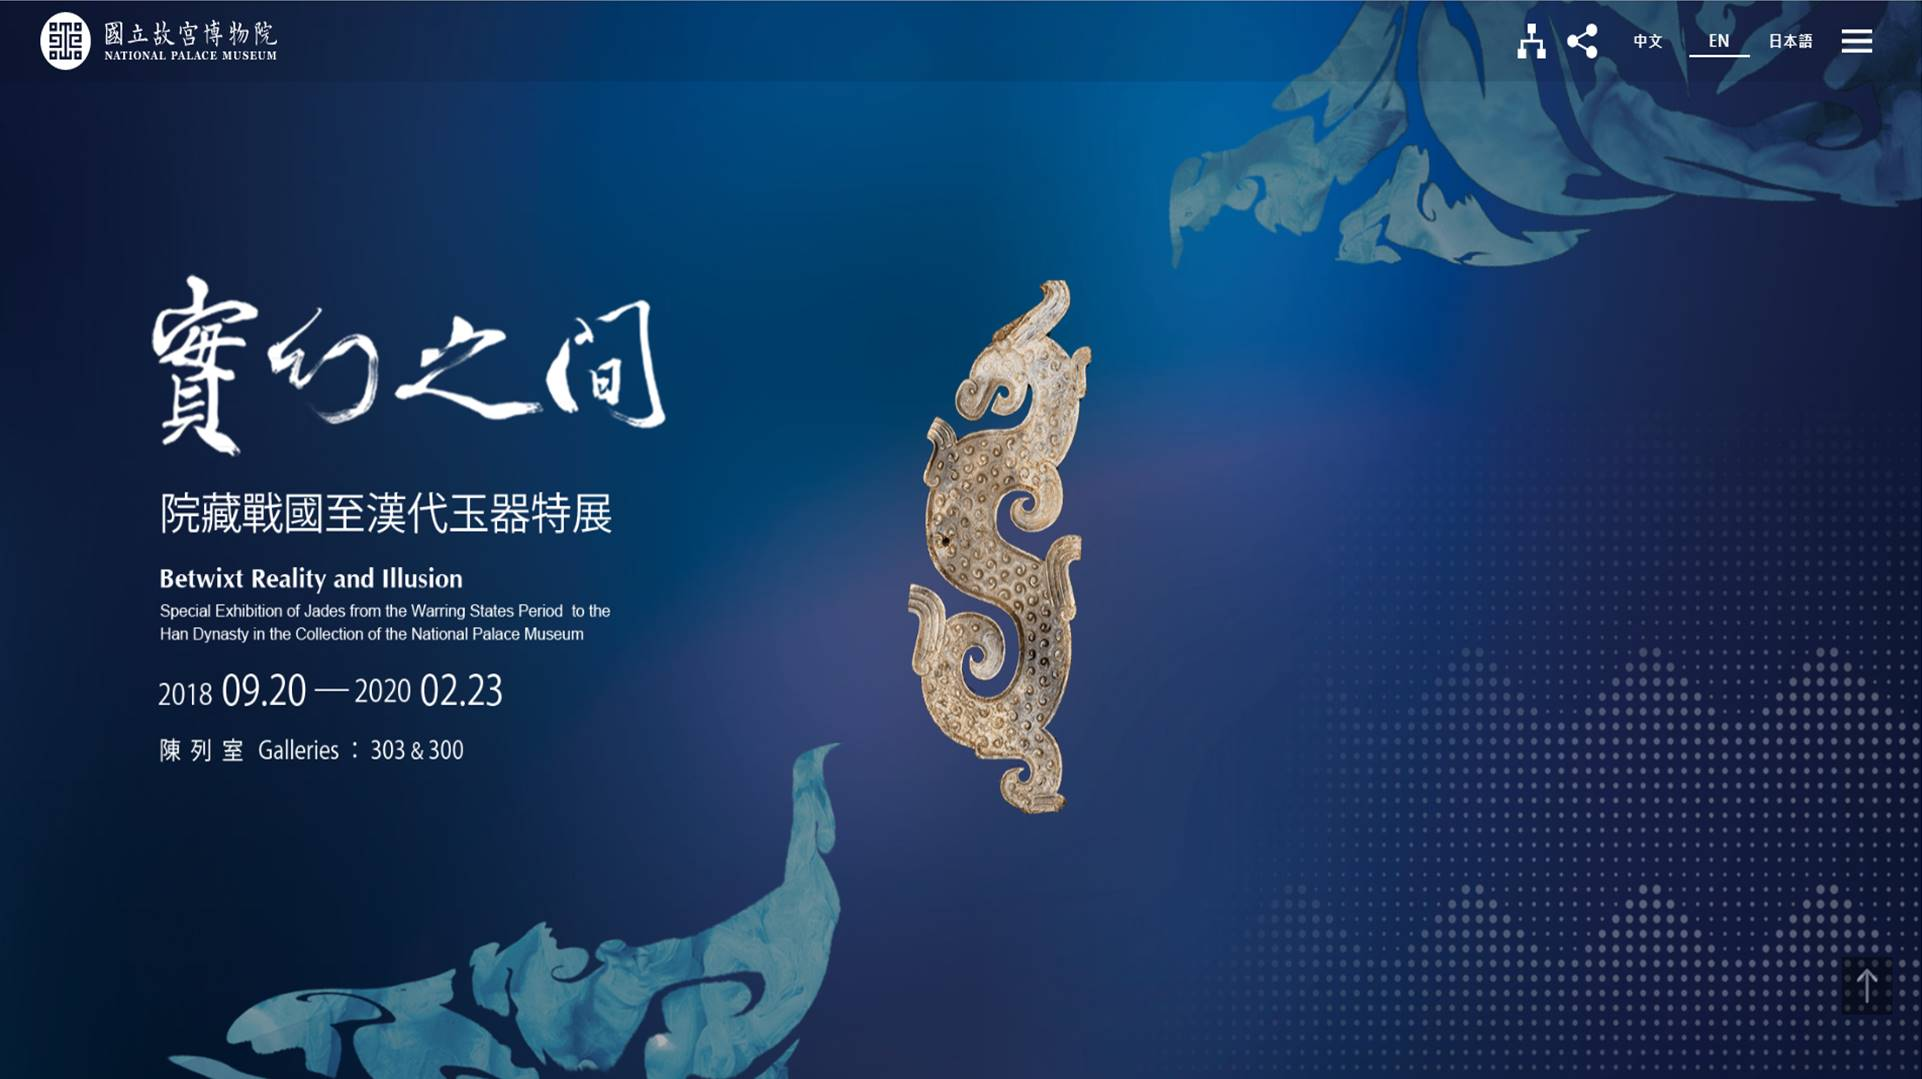 Betwixt Reality and Illusion: Special Exhibition of Jades from the Warring States Period to the Han Dynasty in the Collection of the National Palace Museum